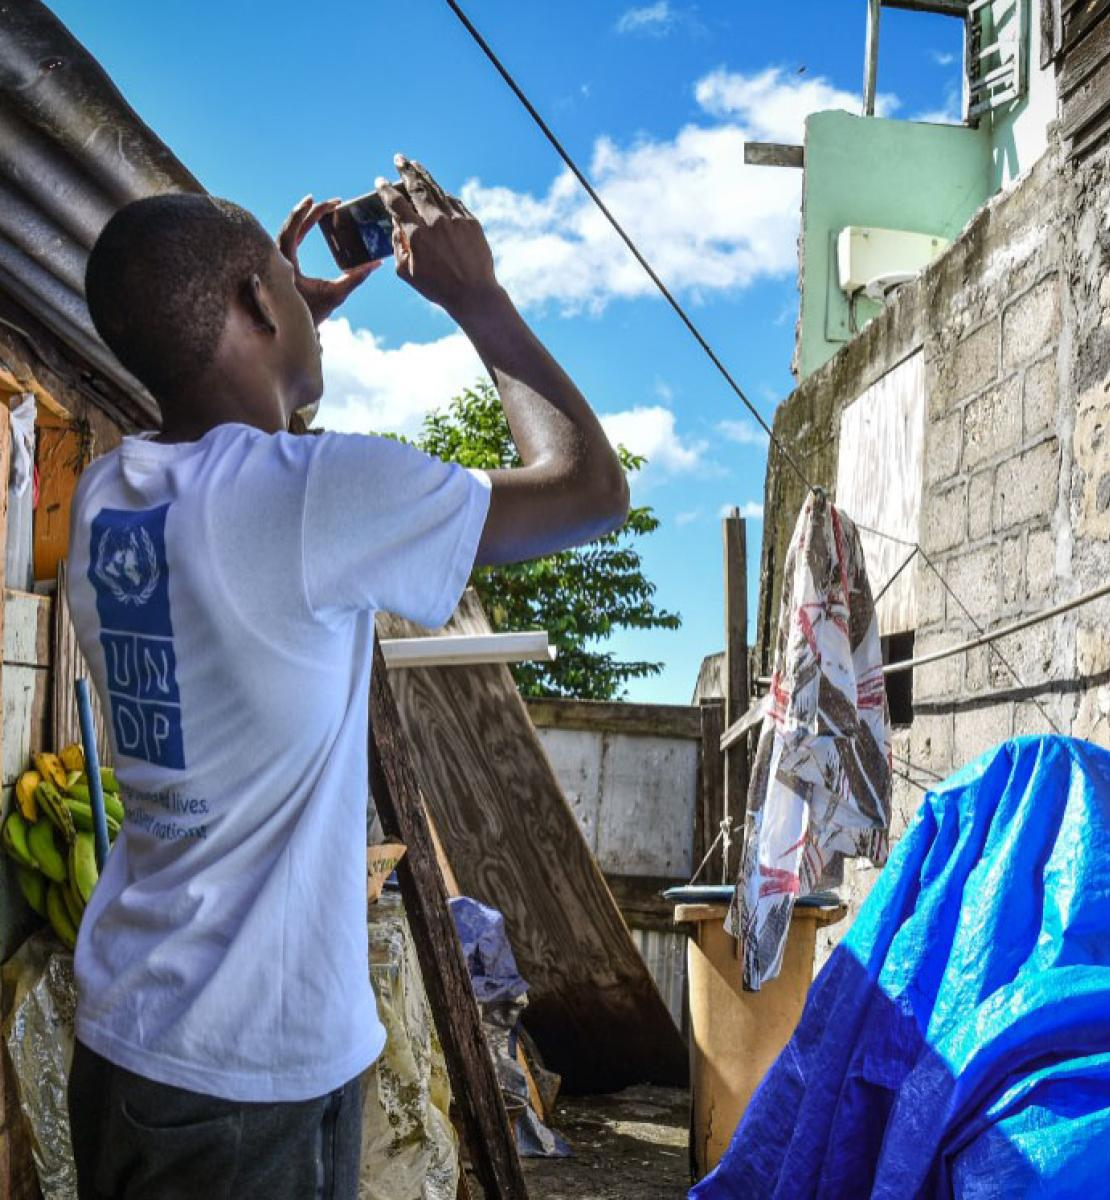 UNDP assessor uses his mobile device to asses damage after a storm.